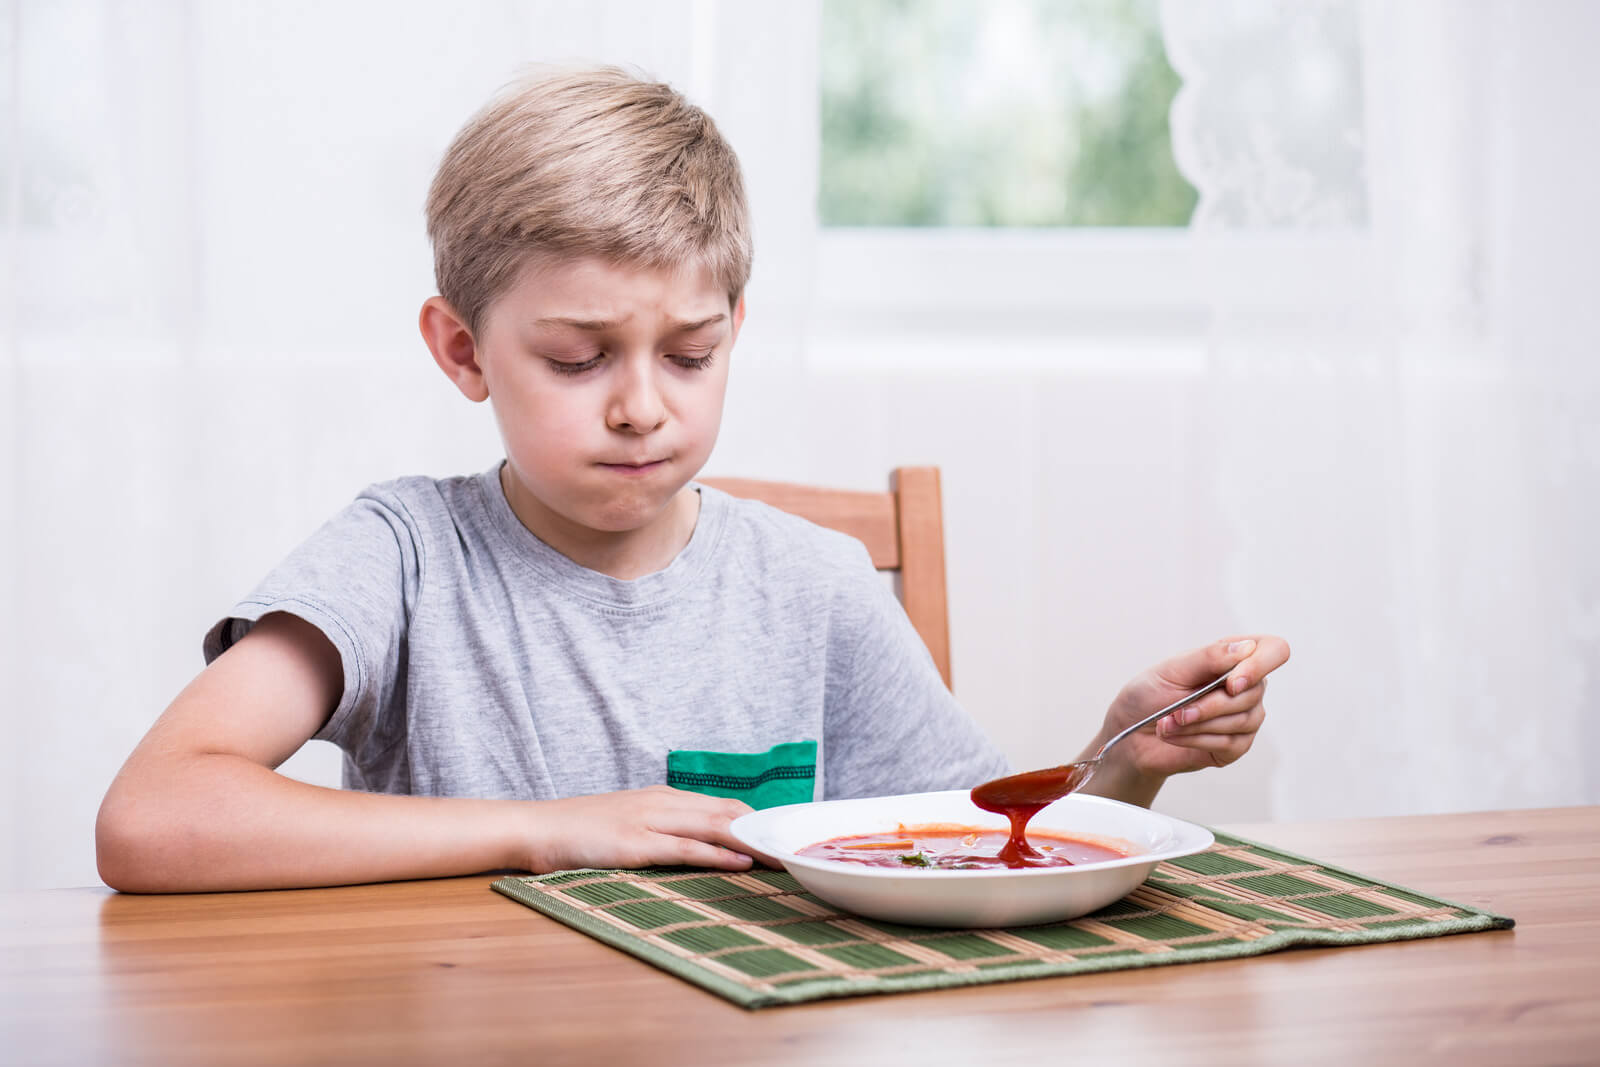 young child scoffs at food obvious picky eater